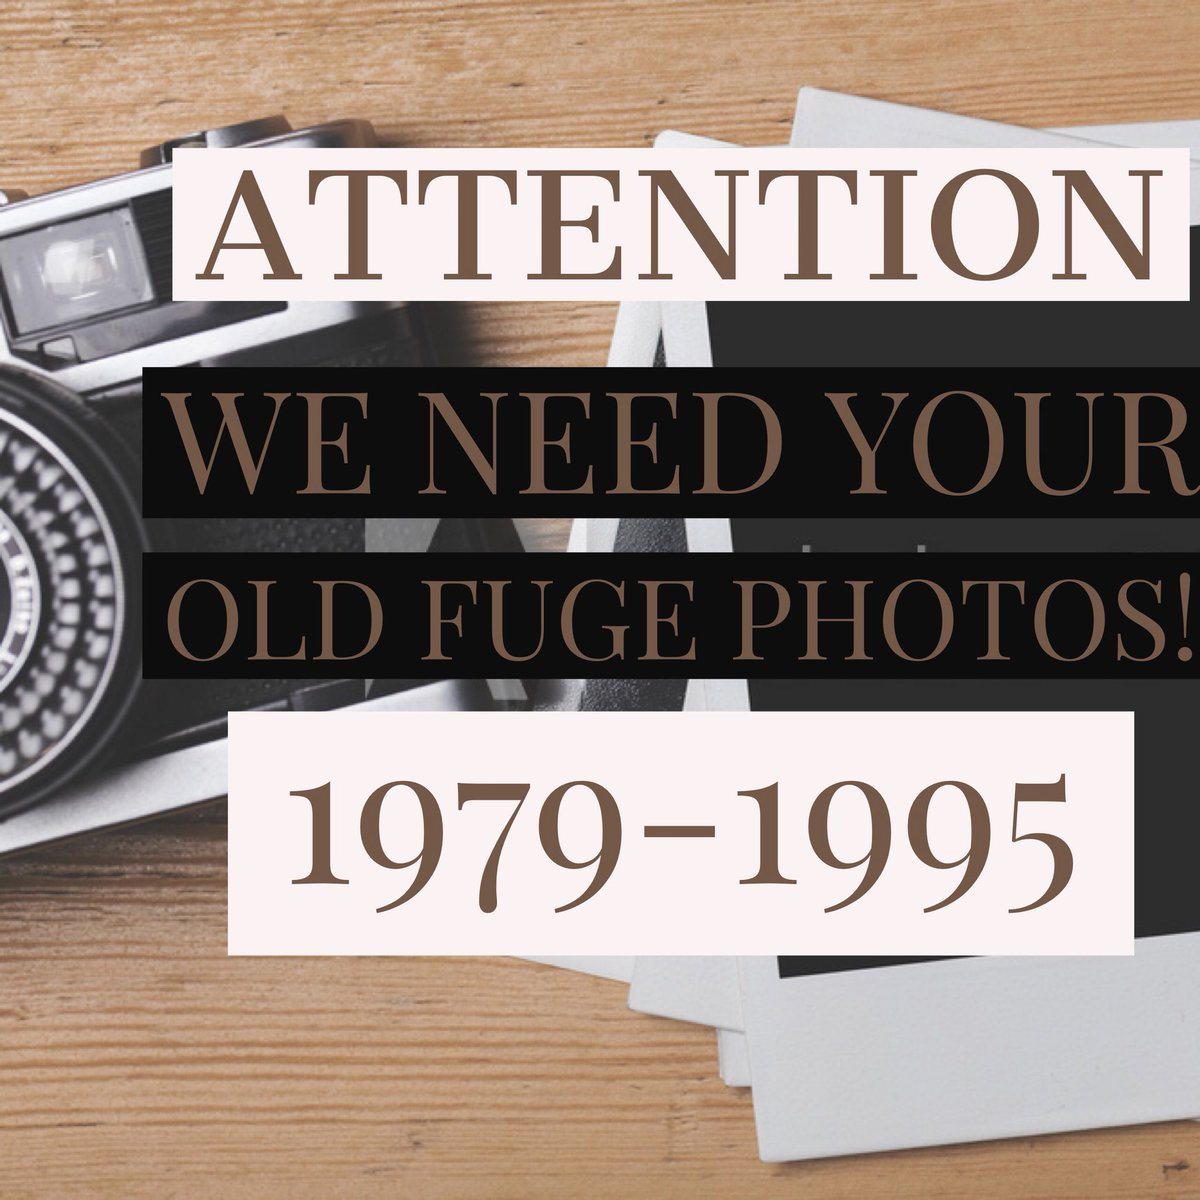 test Twitter Media - We are searching for photos and videos from FUGE Camps 1979-1995. If you have any, please send a copy of them to FUGE@LifeWay.com by March 1. We love a good classic! https://t.co/LdbNWv30gi